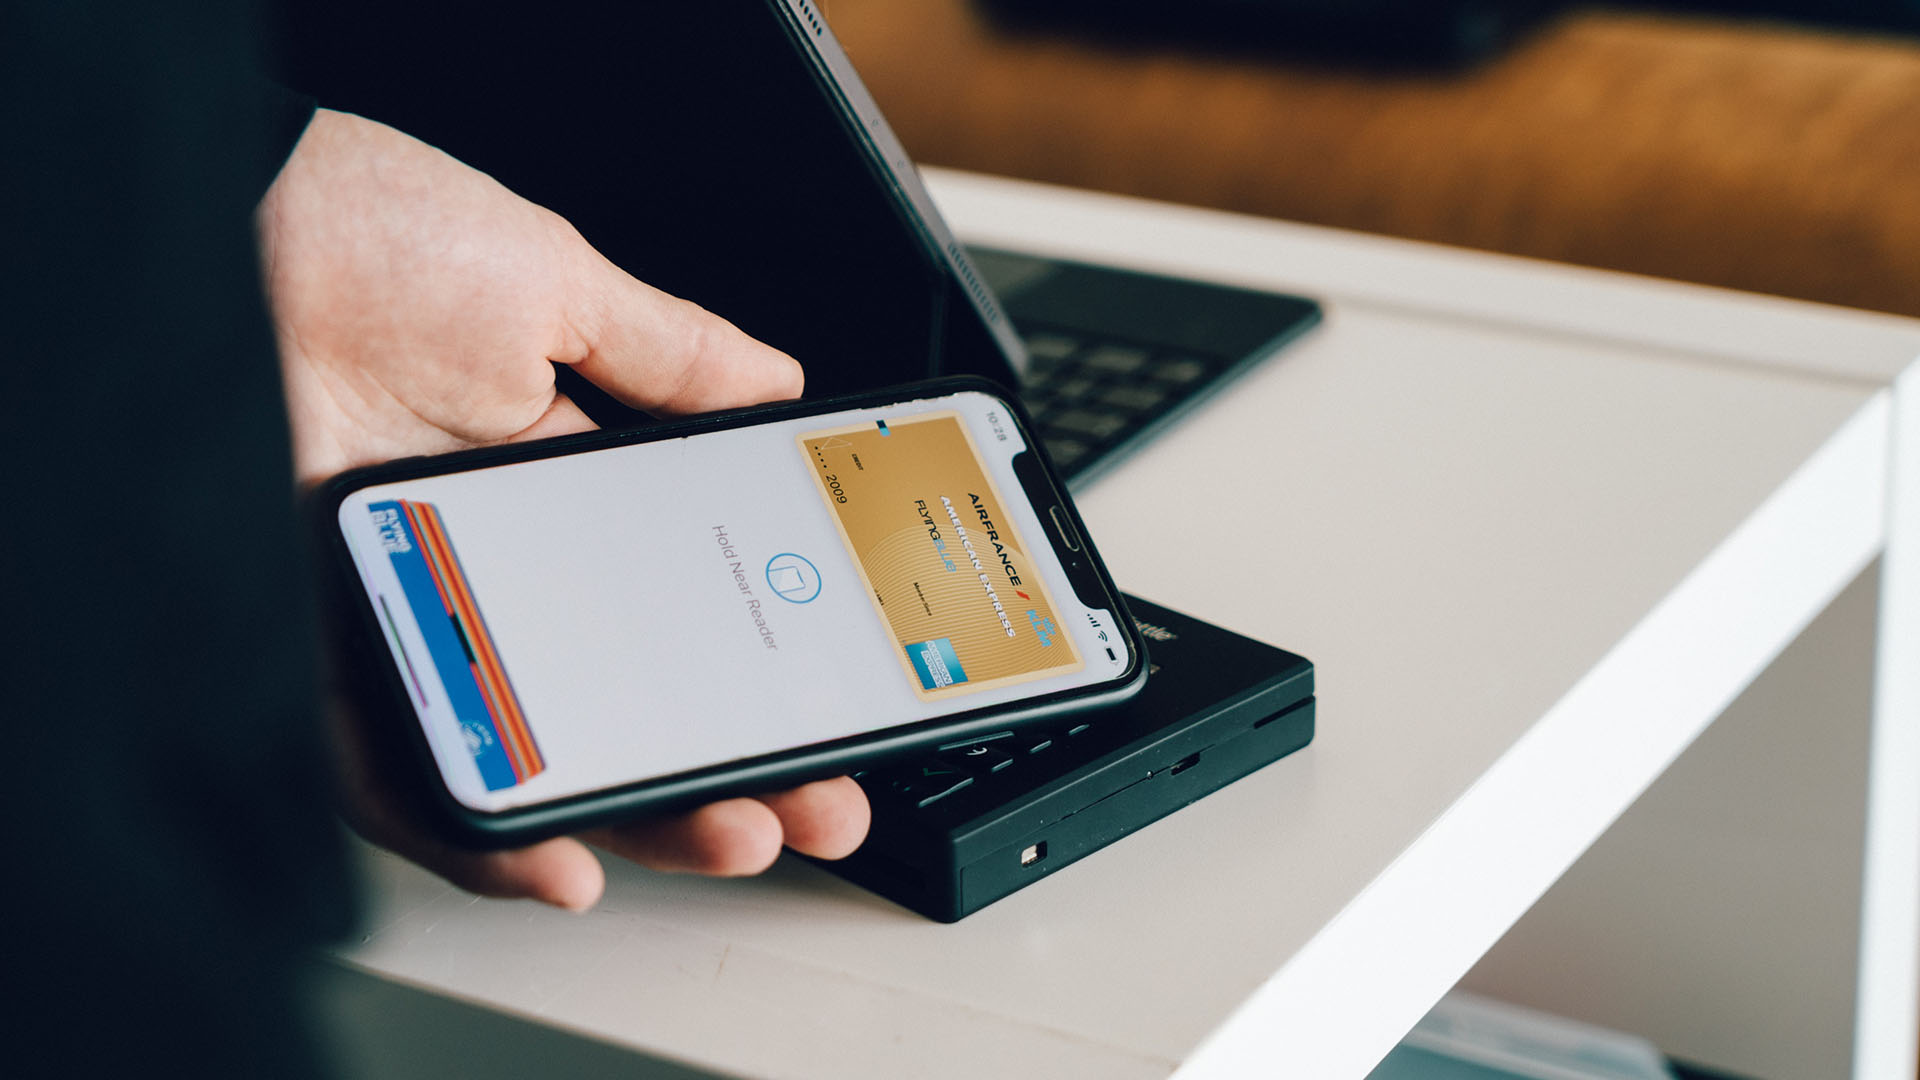 15 Digital Payment Upgrades That Would Improve The Customer Experience